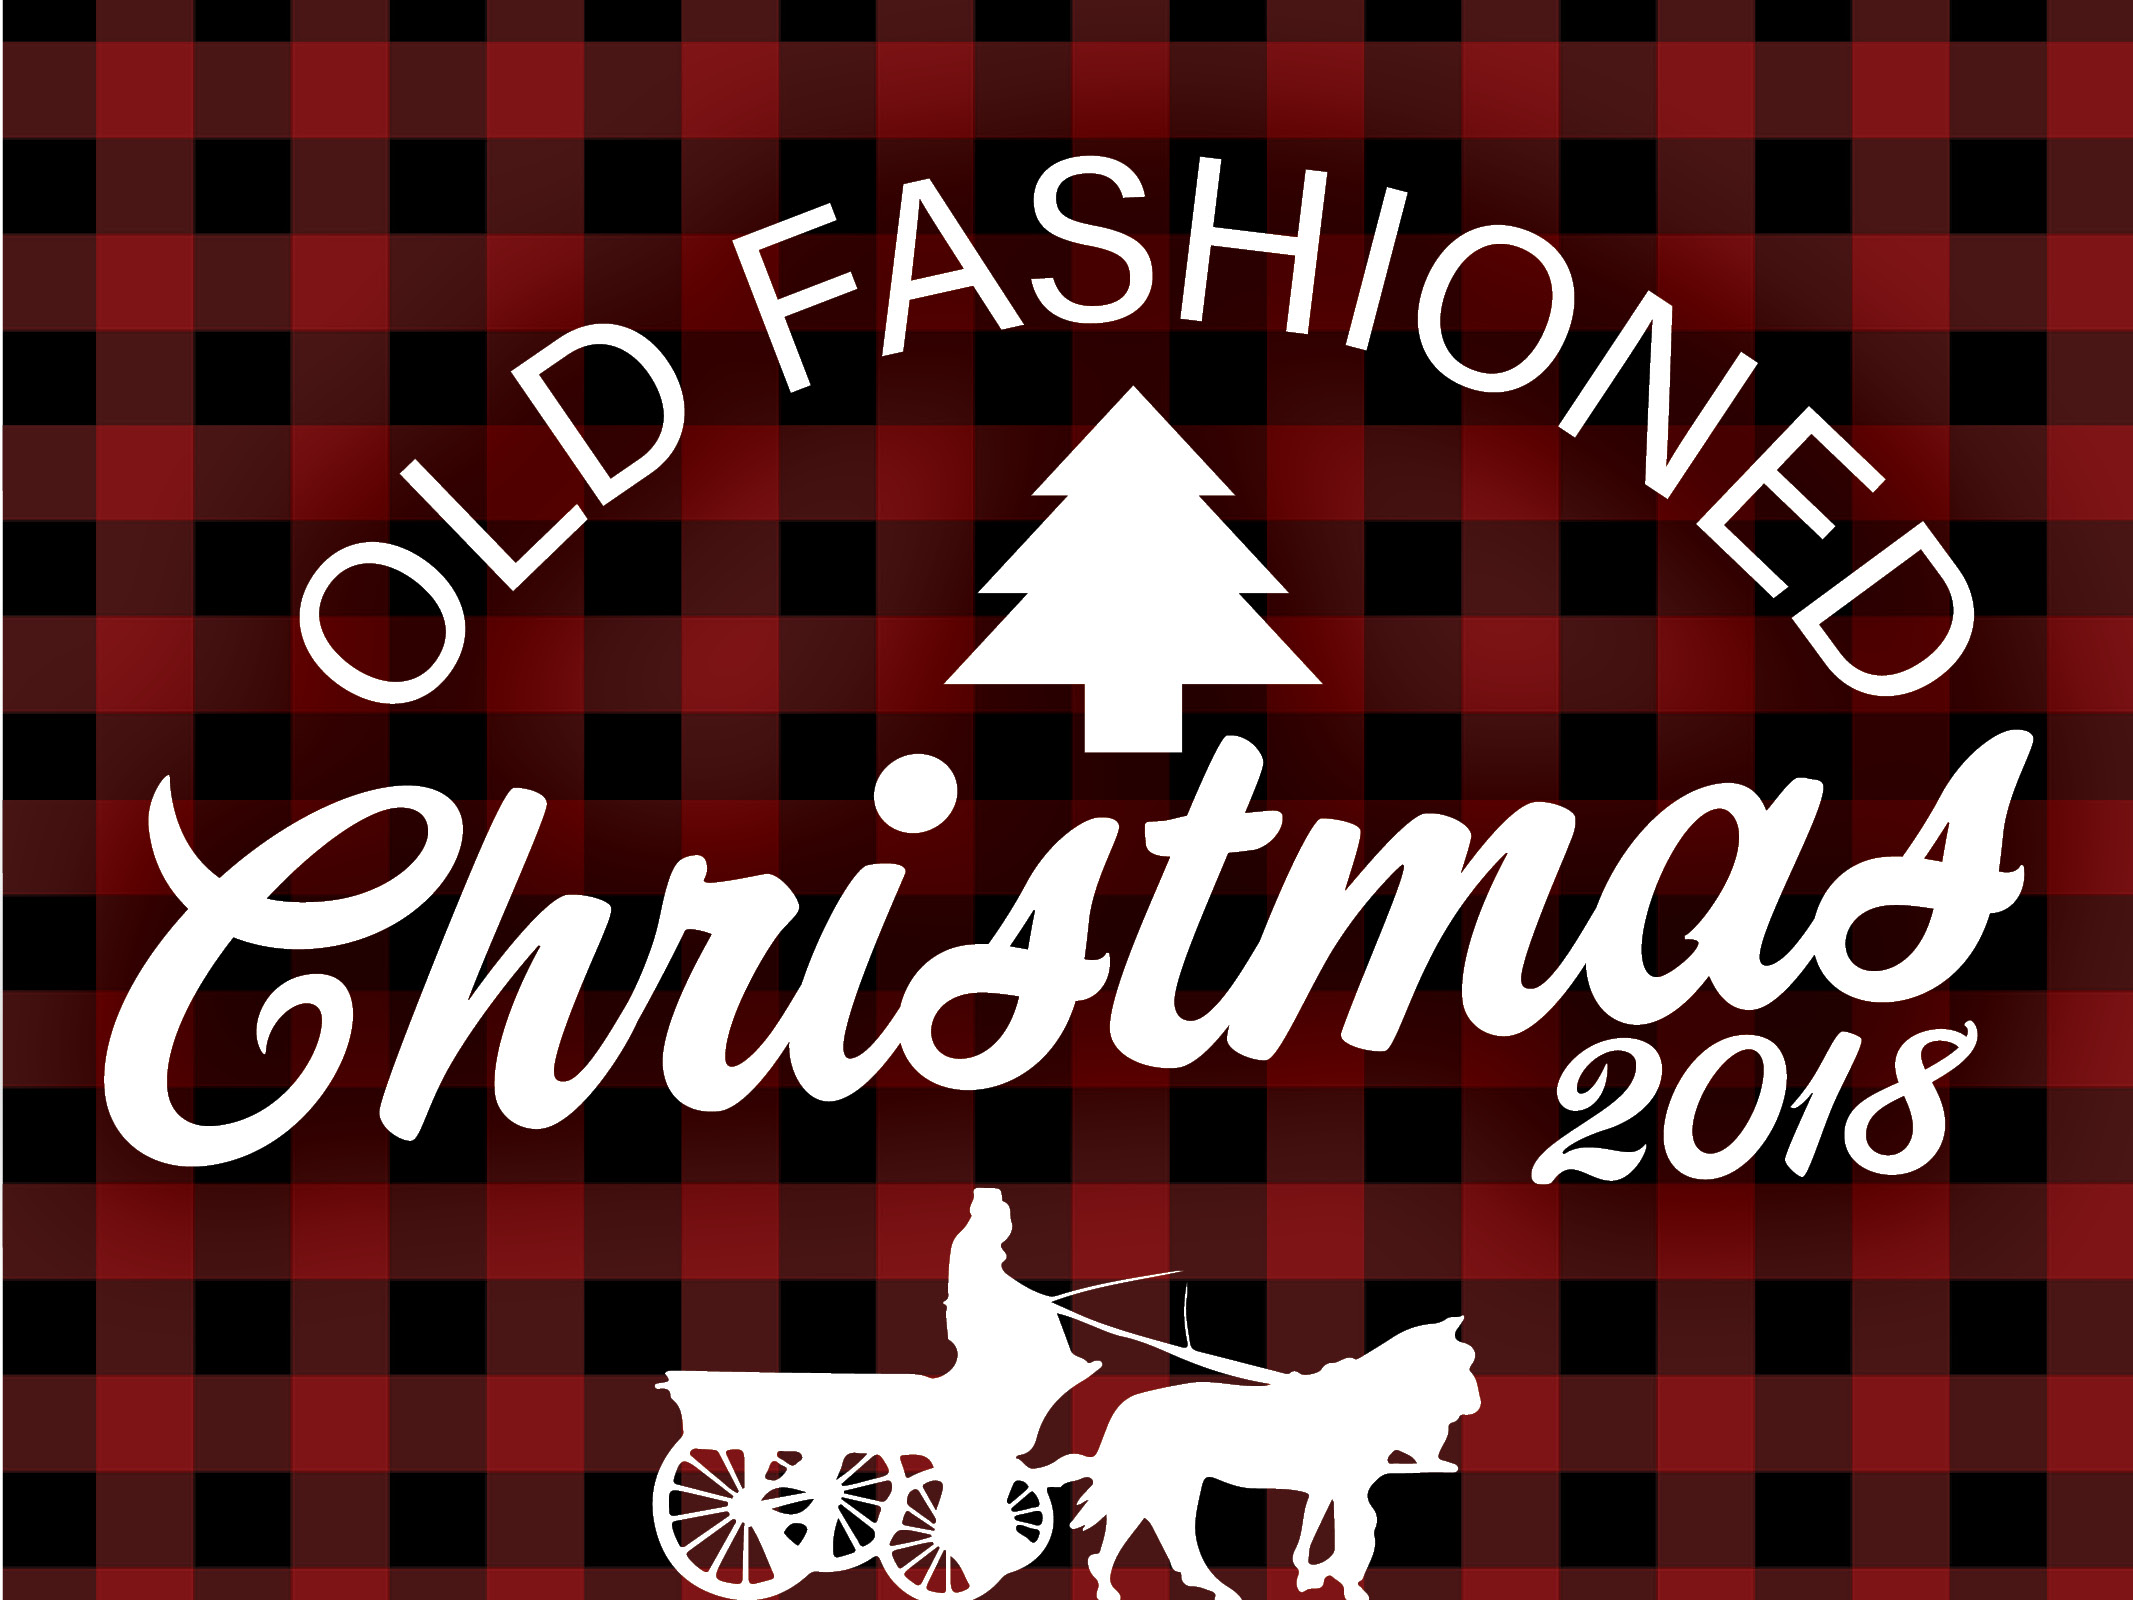 Old Fashioned Christmas 2018 Vector Image